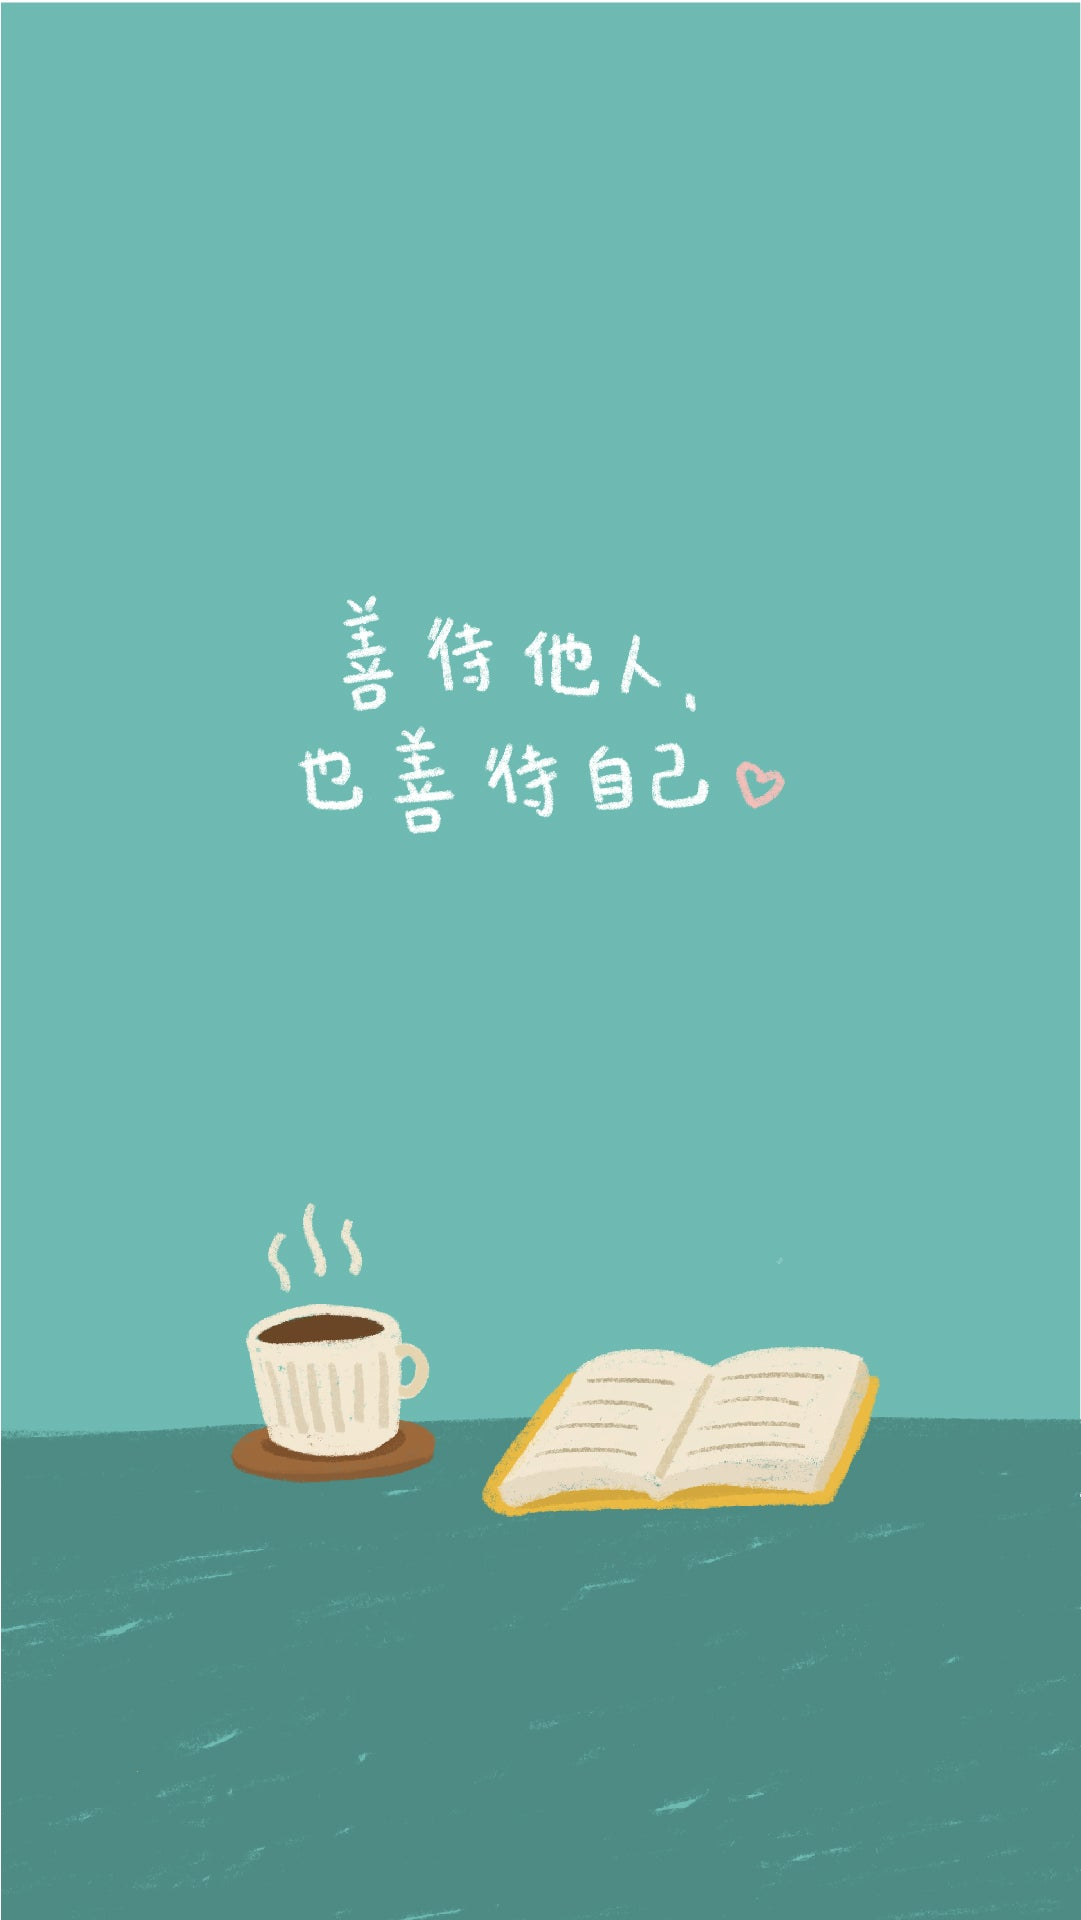 phone wallpaper of a digital illustration of a chinese quote about loving yourself and others